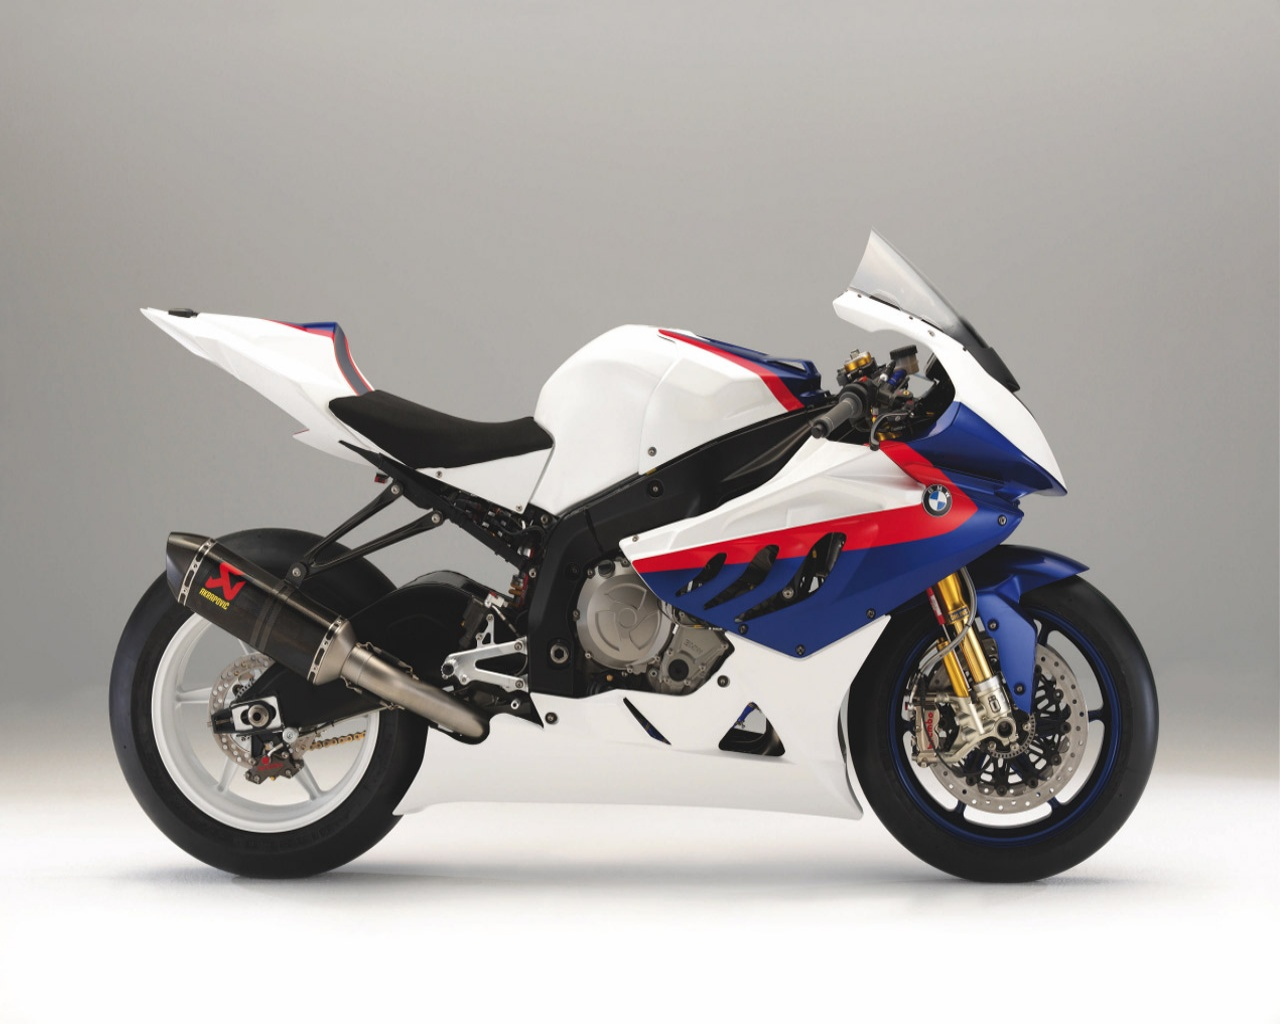 BMW S 1000 RR Race Bike Wallpapers in jpg format for free